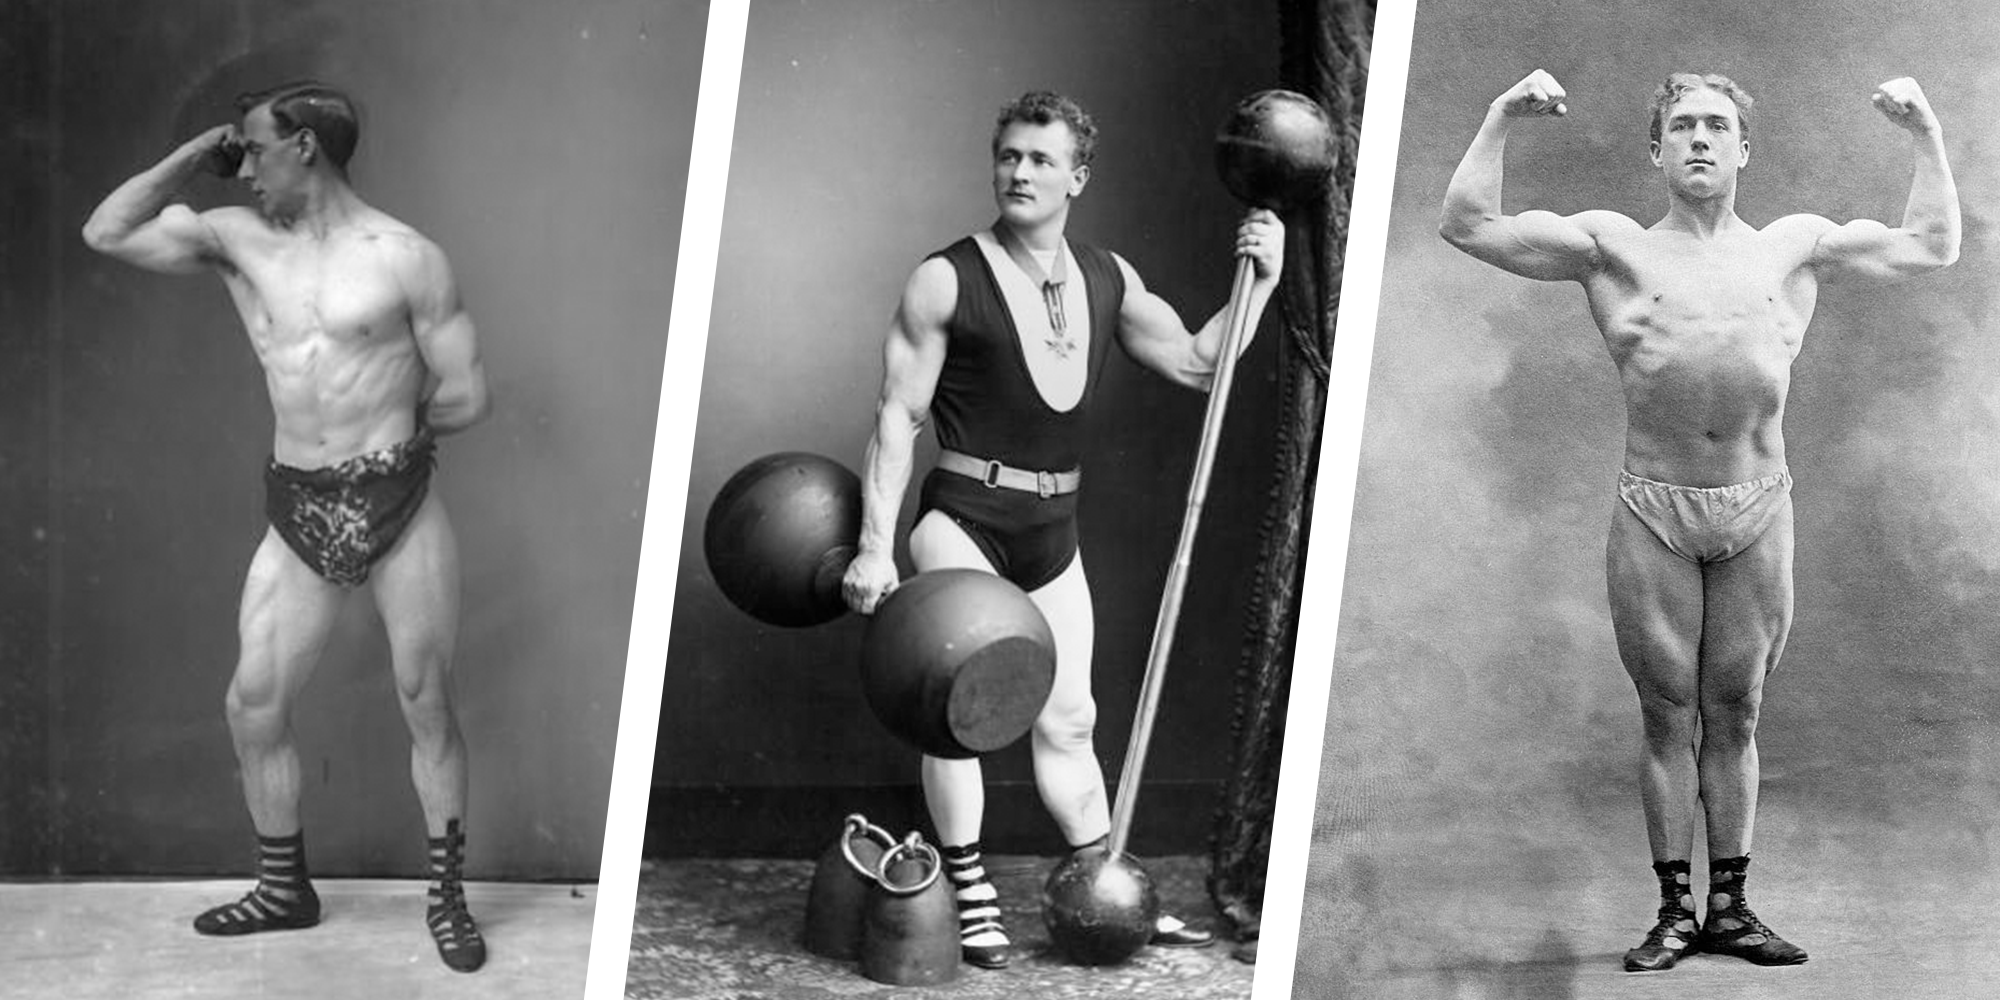 45 Vintage Bodybuilding Photos From the Early 1900s